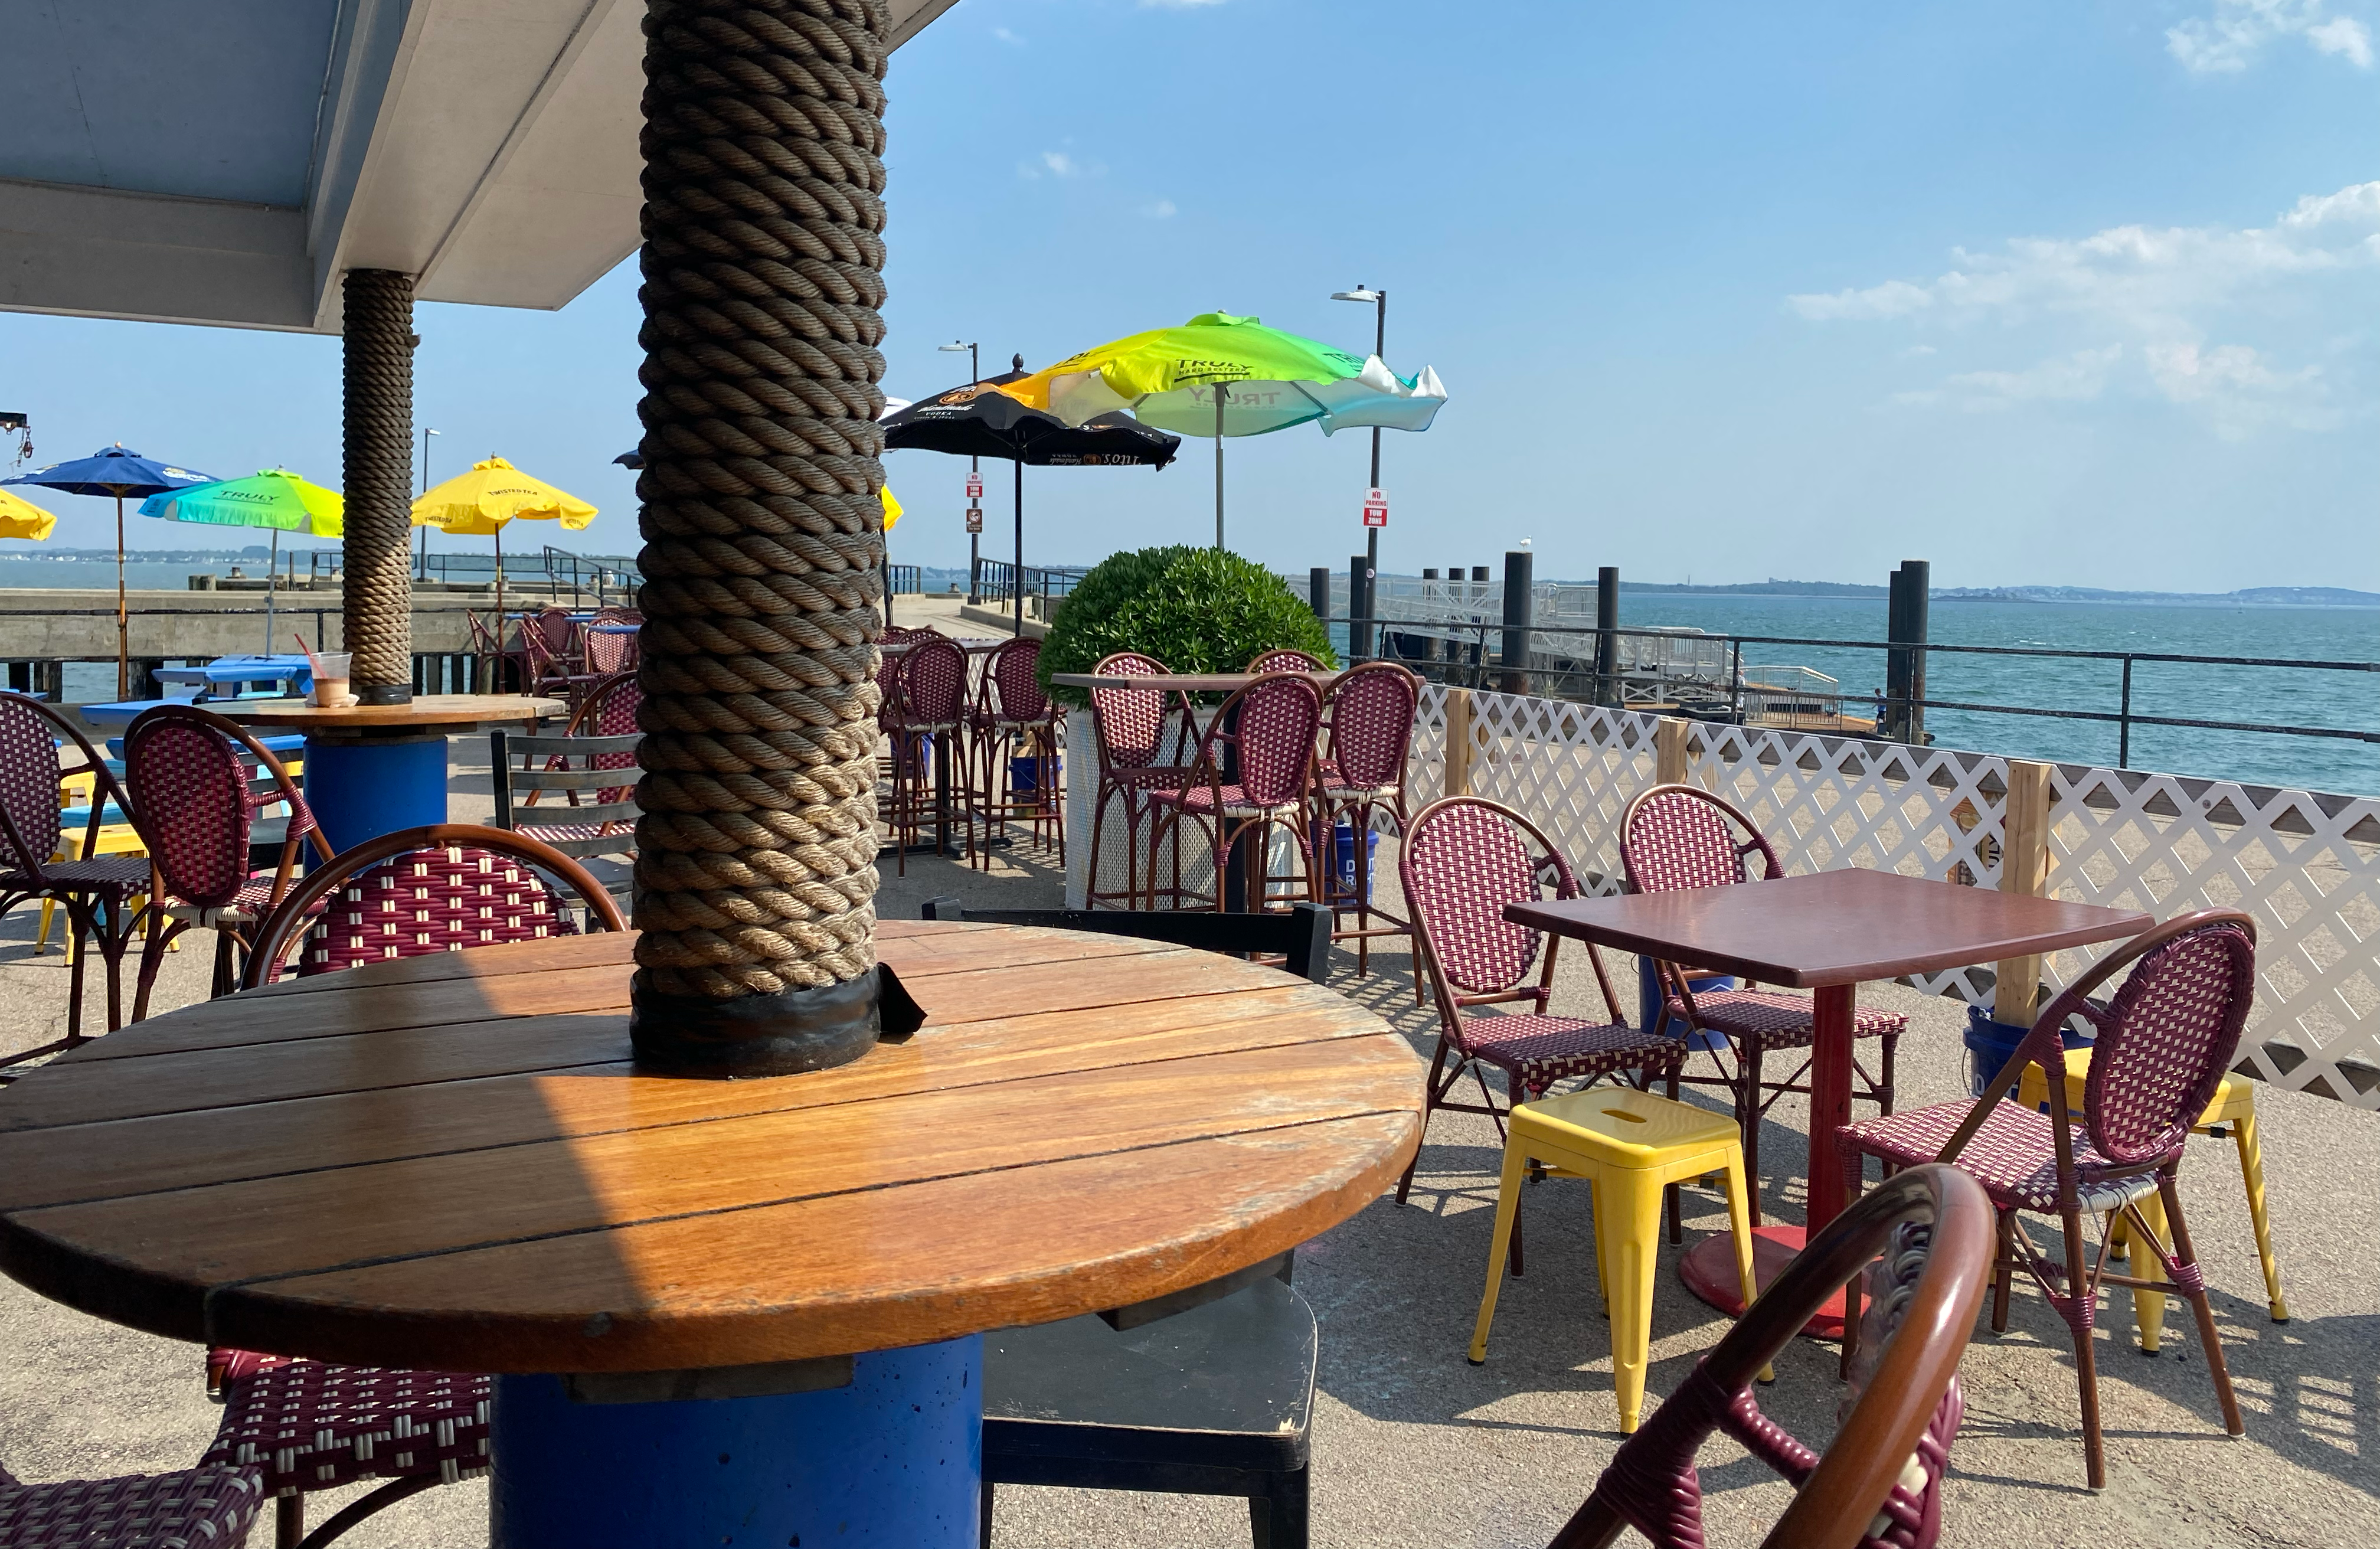 Sunny patio next to pemberton pier with wooden tables and colorful umbrellas